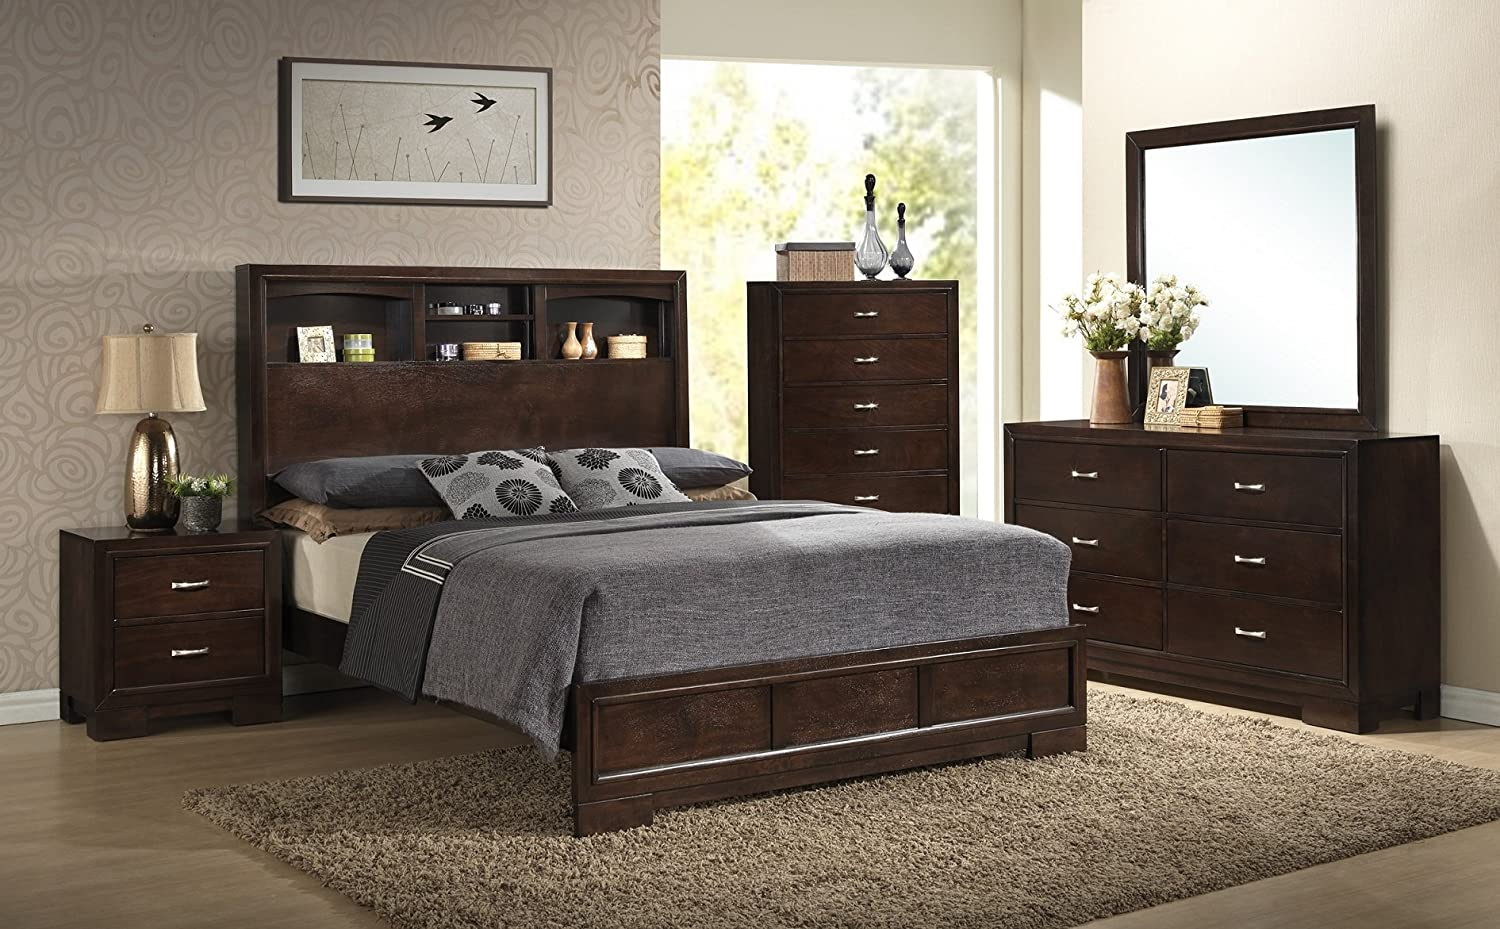 bedroom and picture size sale sets home king best awesome furniture garden set for affordable project bed